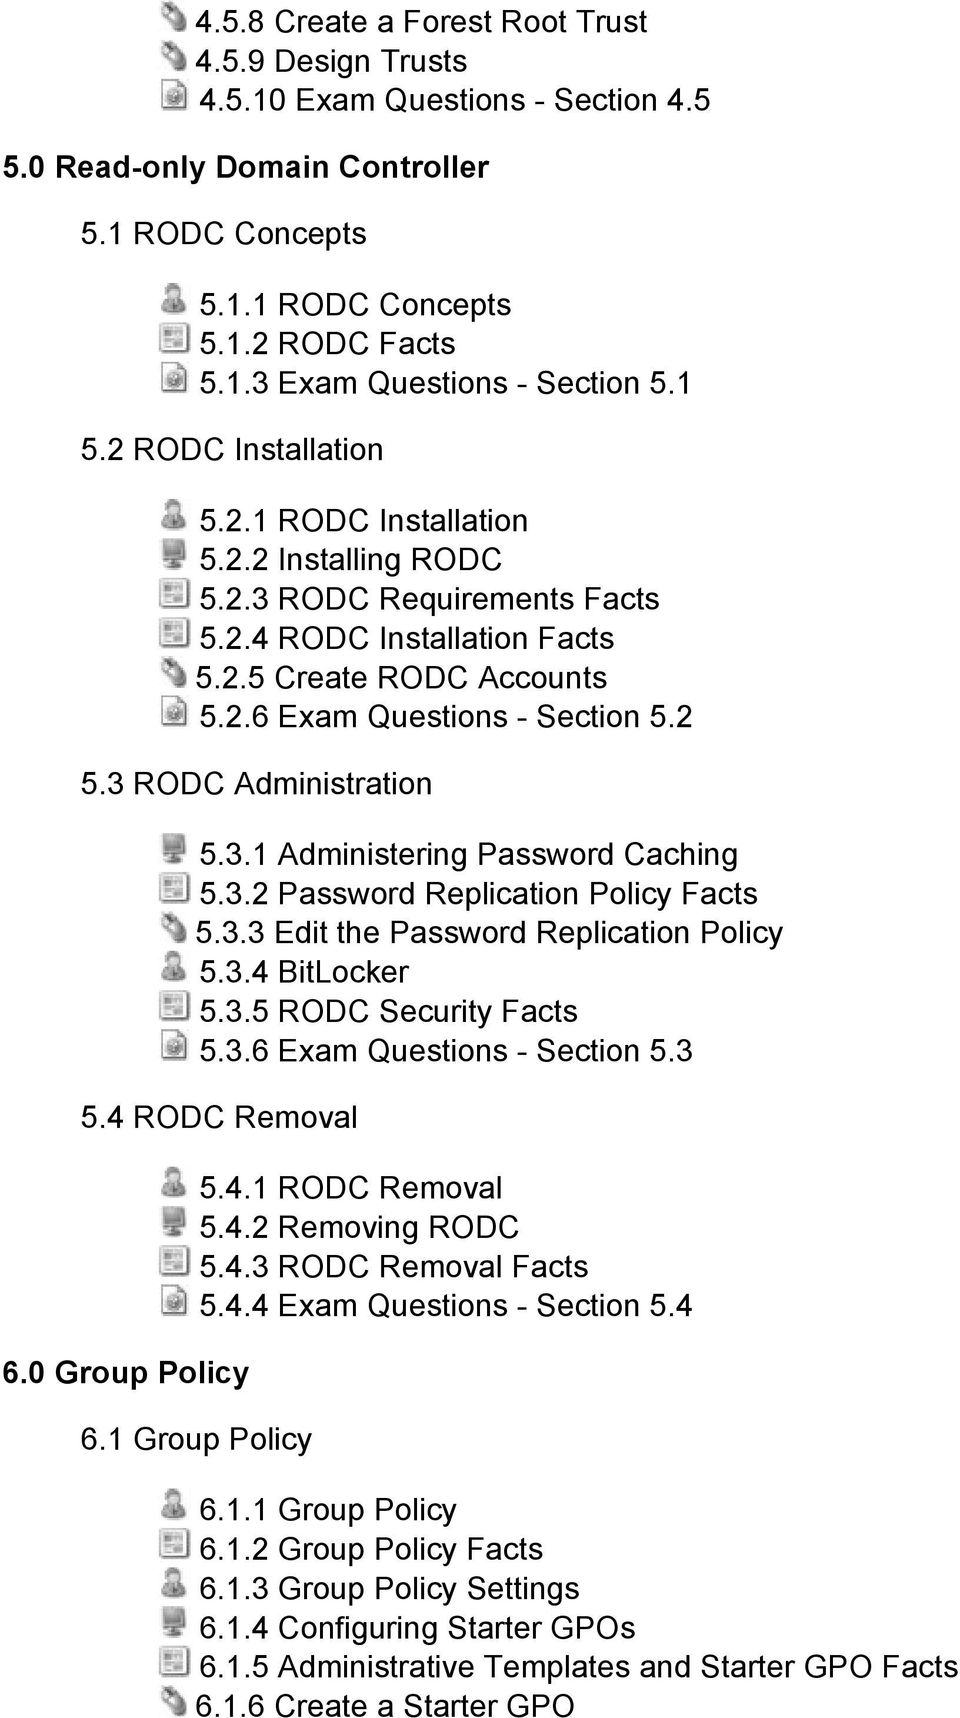 3 RODC Administration 5.3.1 Administering Password Caching 5.3.2 Password Replication Policy Facts 5.3.3 Edit the Password Replication Policy 5.3.4 BitLocker 5.3.5 RODC Security Facts 5.3.6 Exam Questions Section 5.